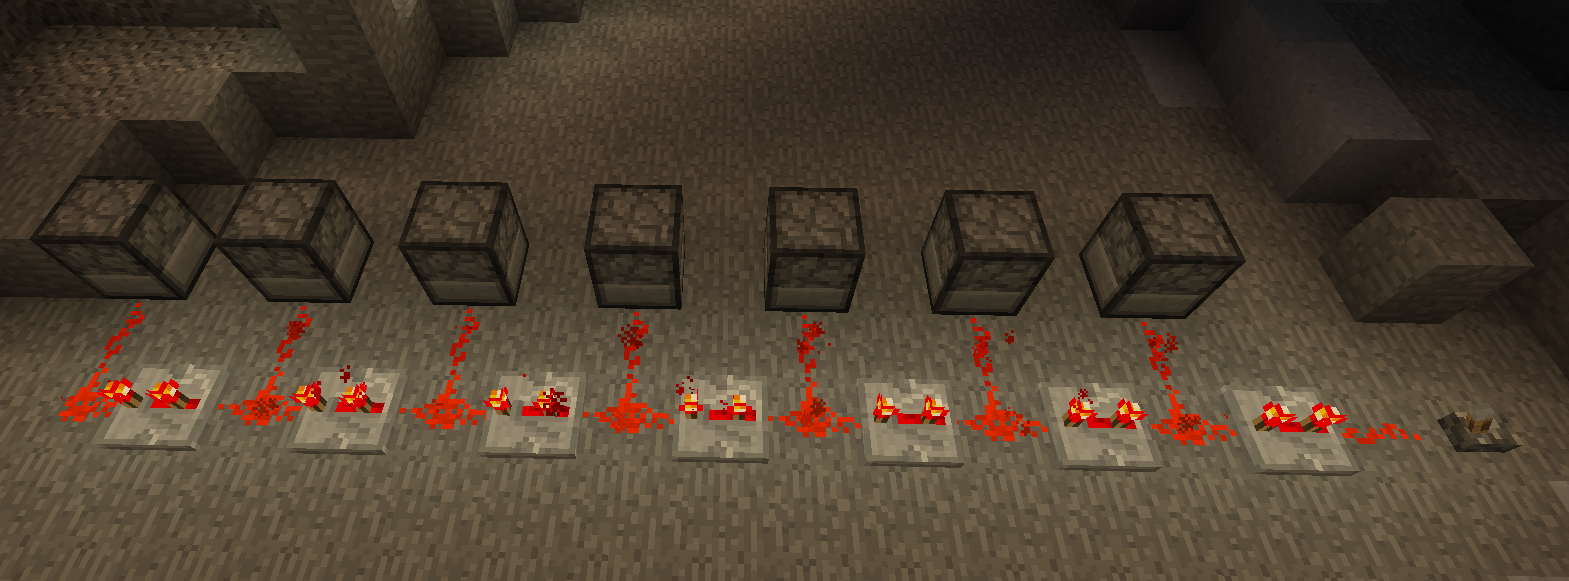 minecraft automatic fireworks display, redstone minecraft fireworks